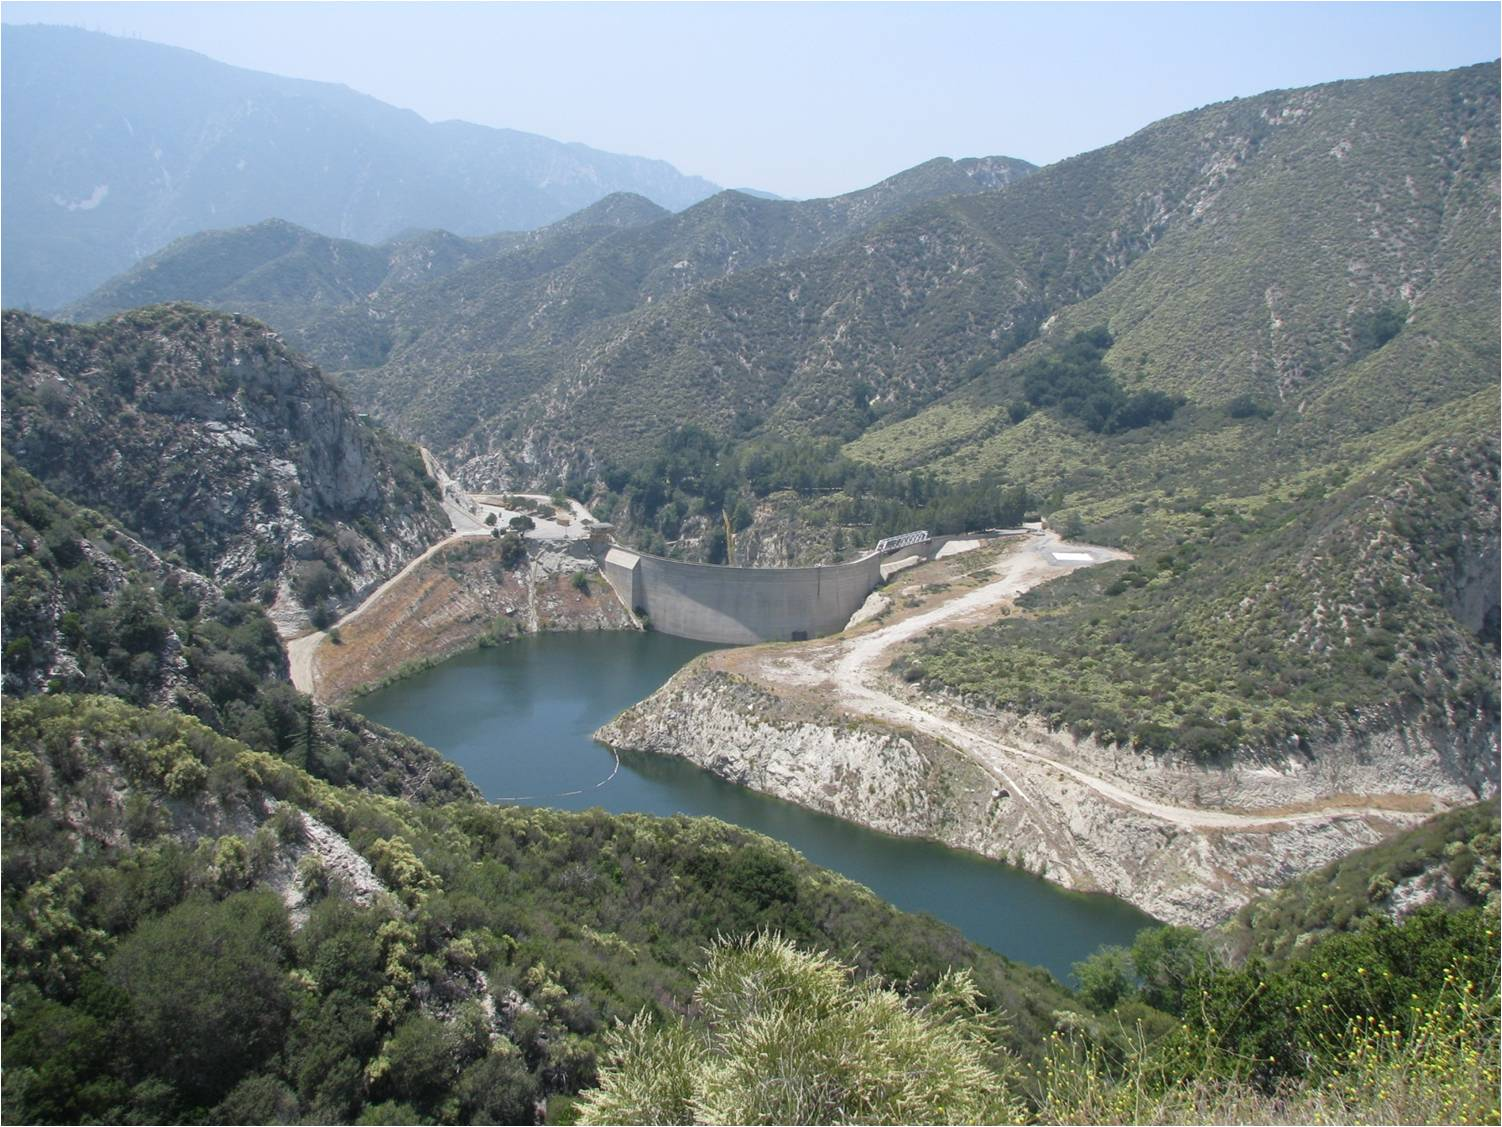 Big Tujunga Reservoir before the Station Fire